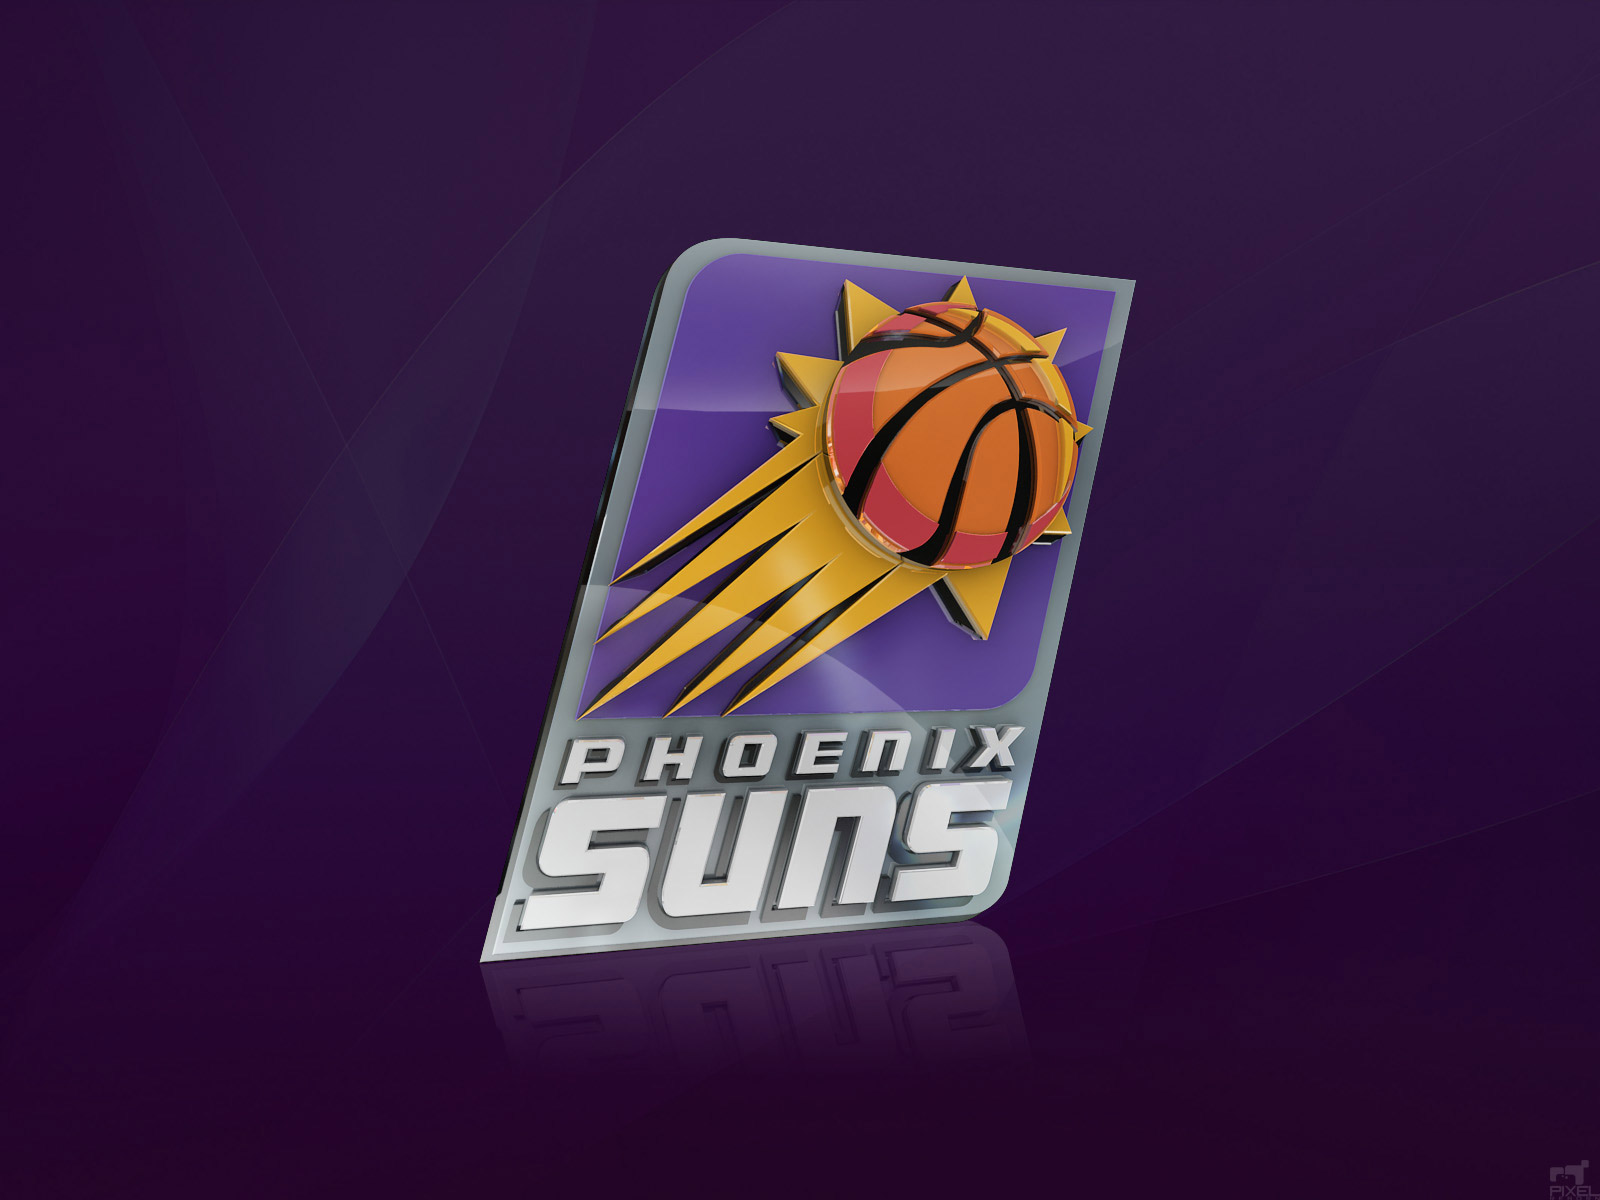 Free Download Nba Wallpapers For Iphone 5 Western Nba Teams